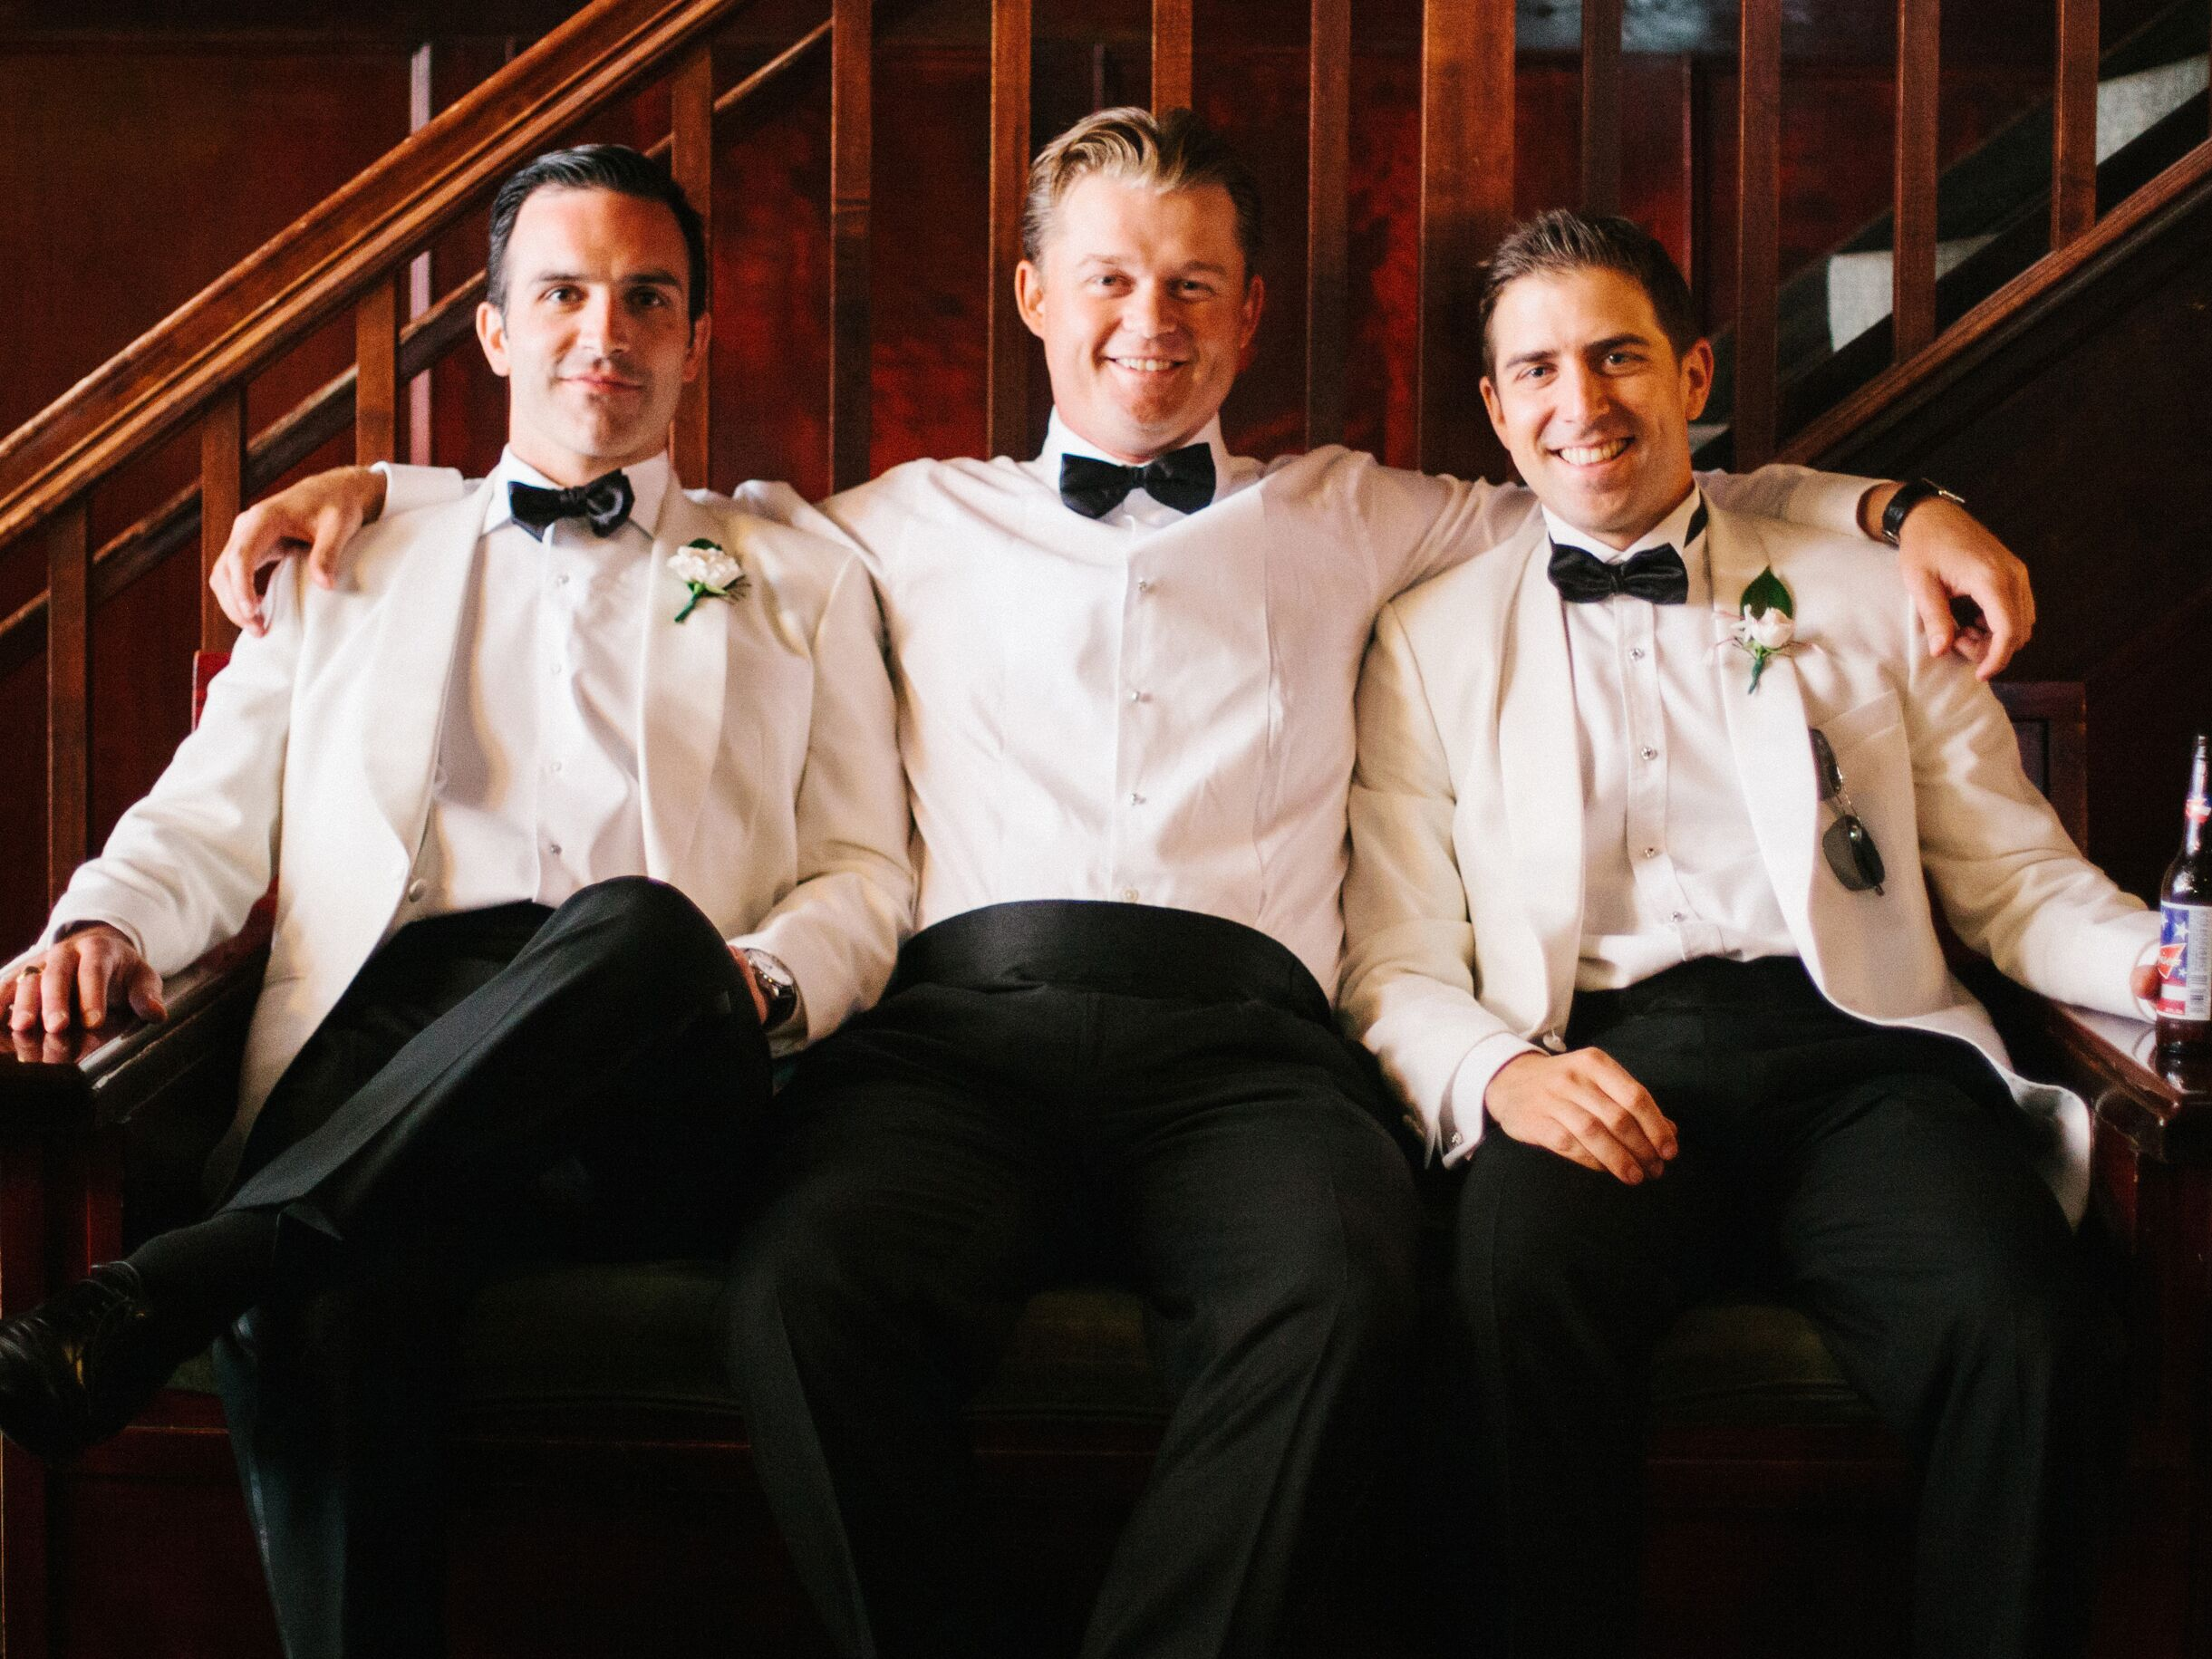 Wedding Tuxedo Rental Basics